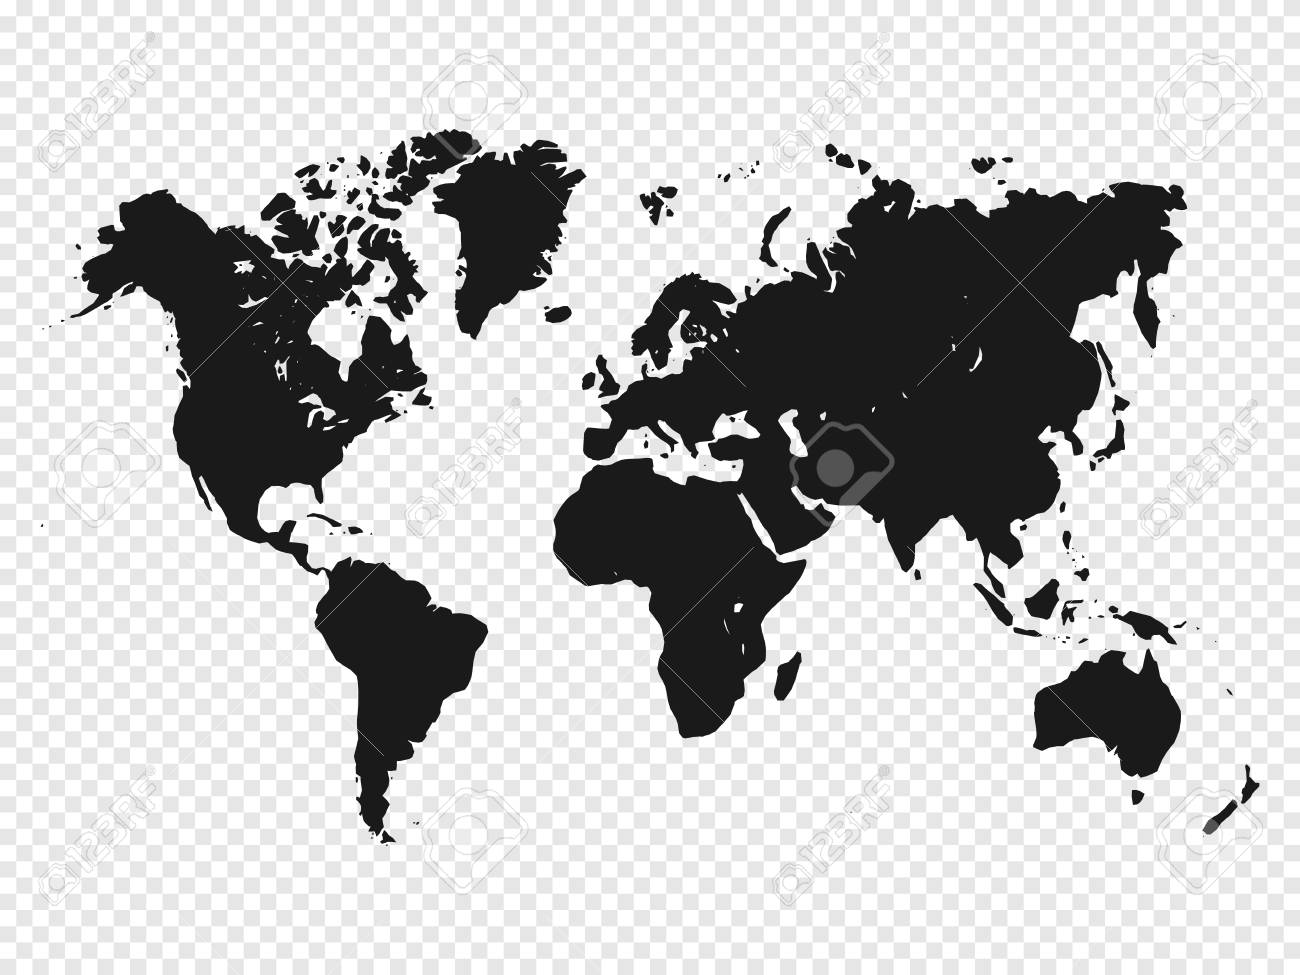 Black World Map Silhouette On Transparent Background. Vector